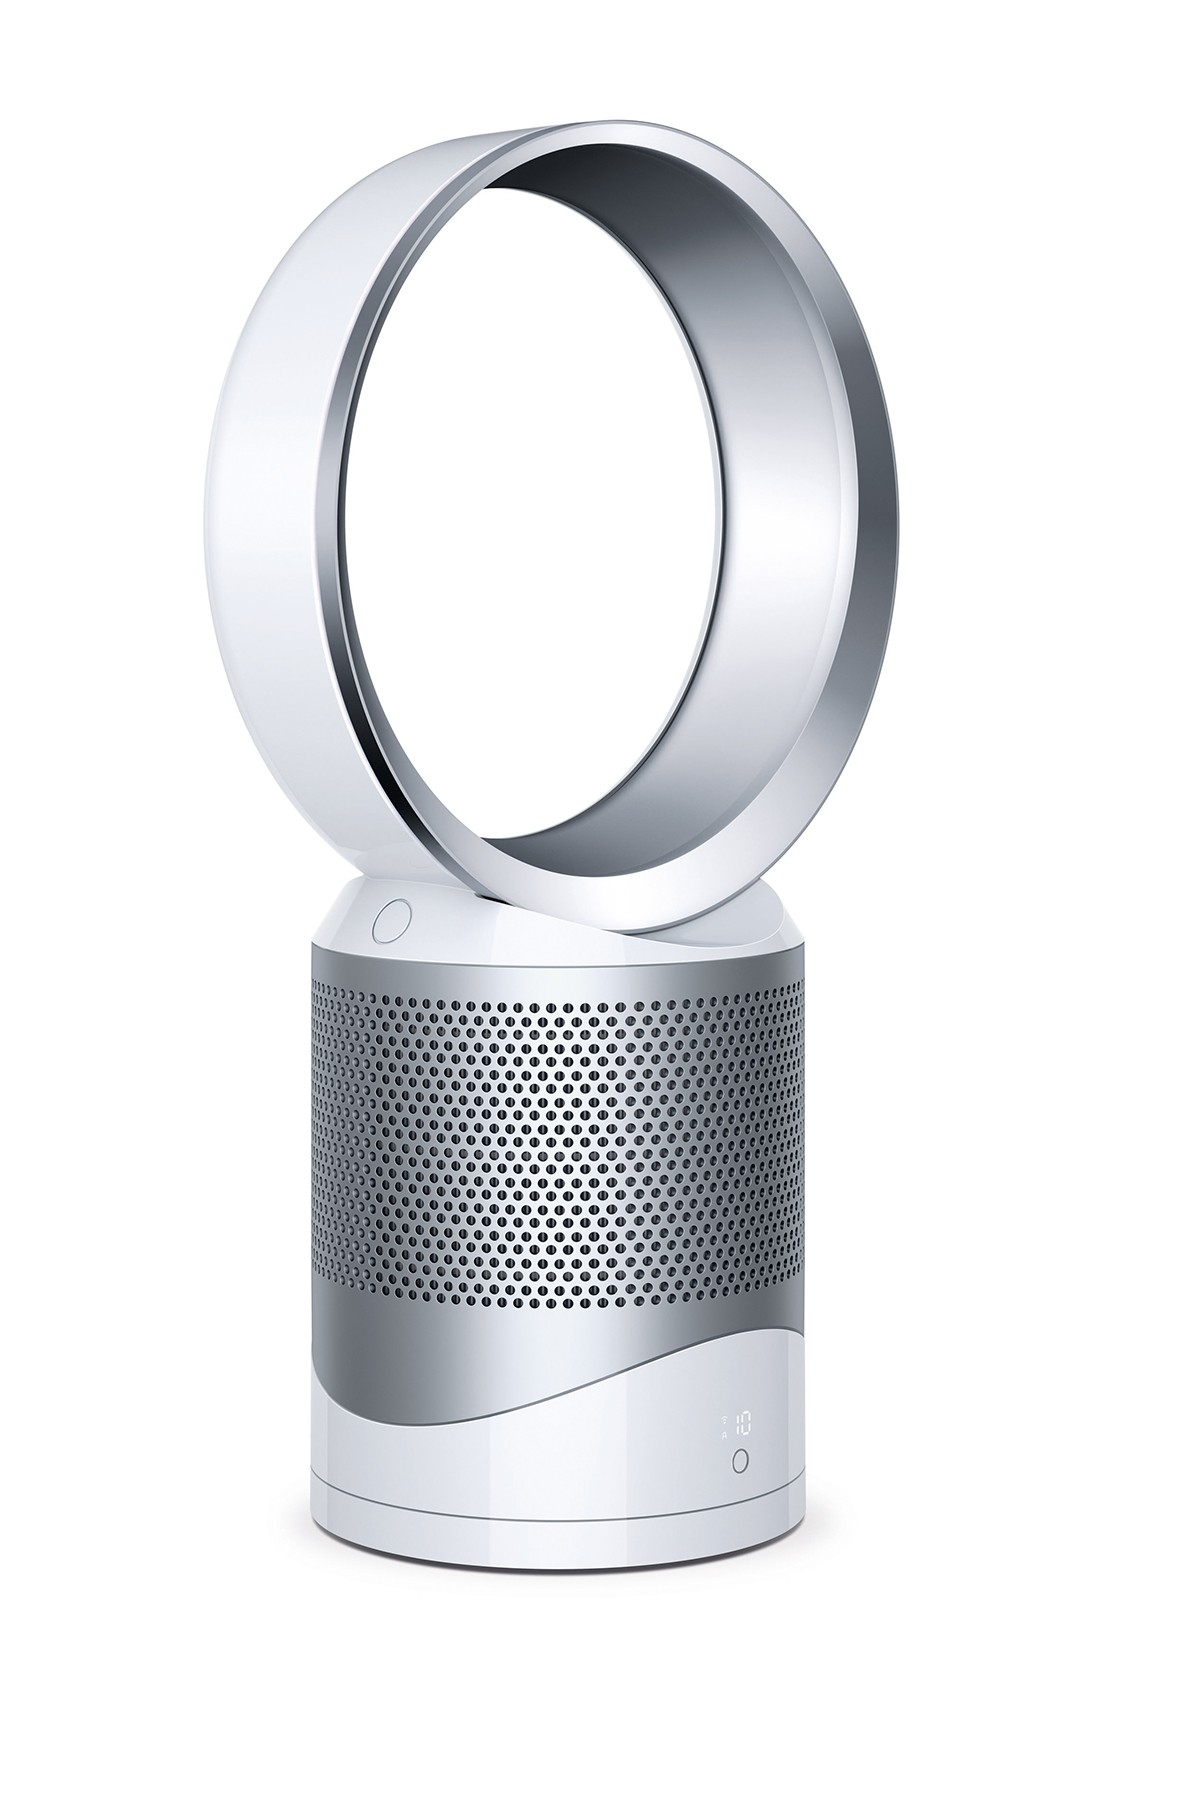 Dyson Purifier Cyber Monday Sale at Nordstrom Rack